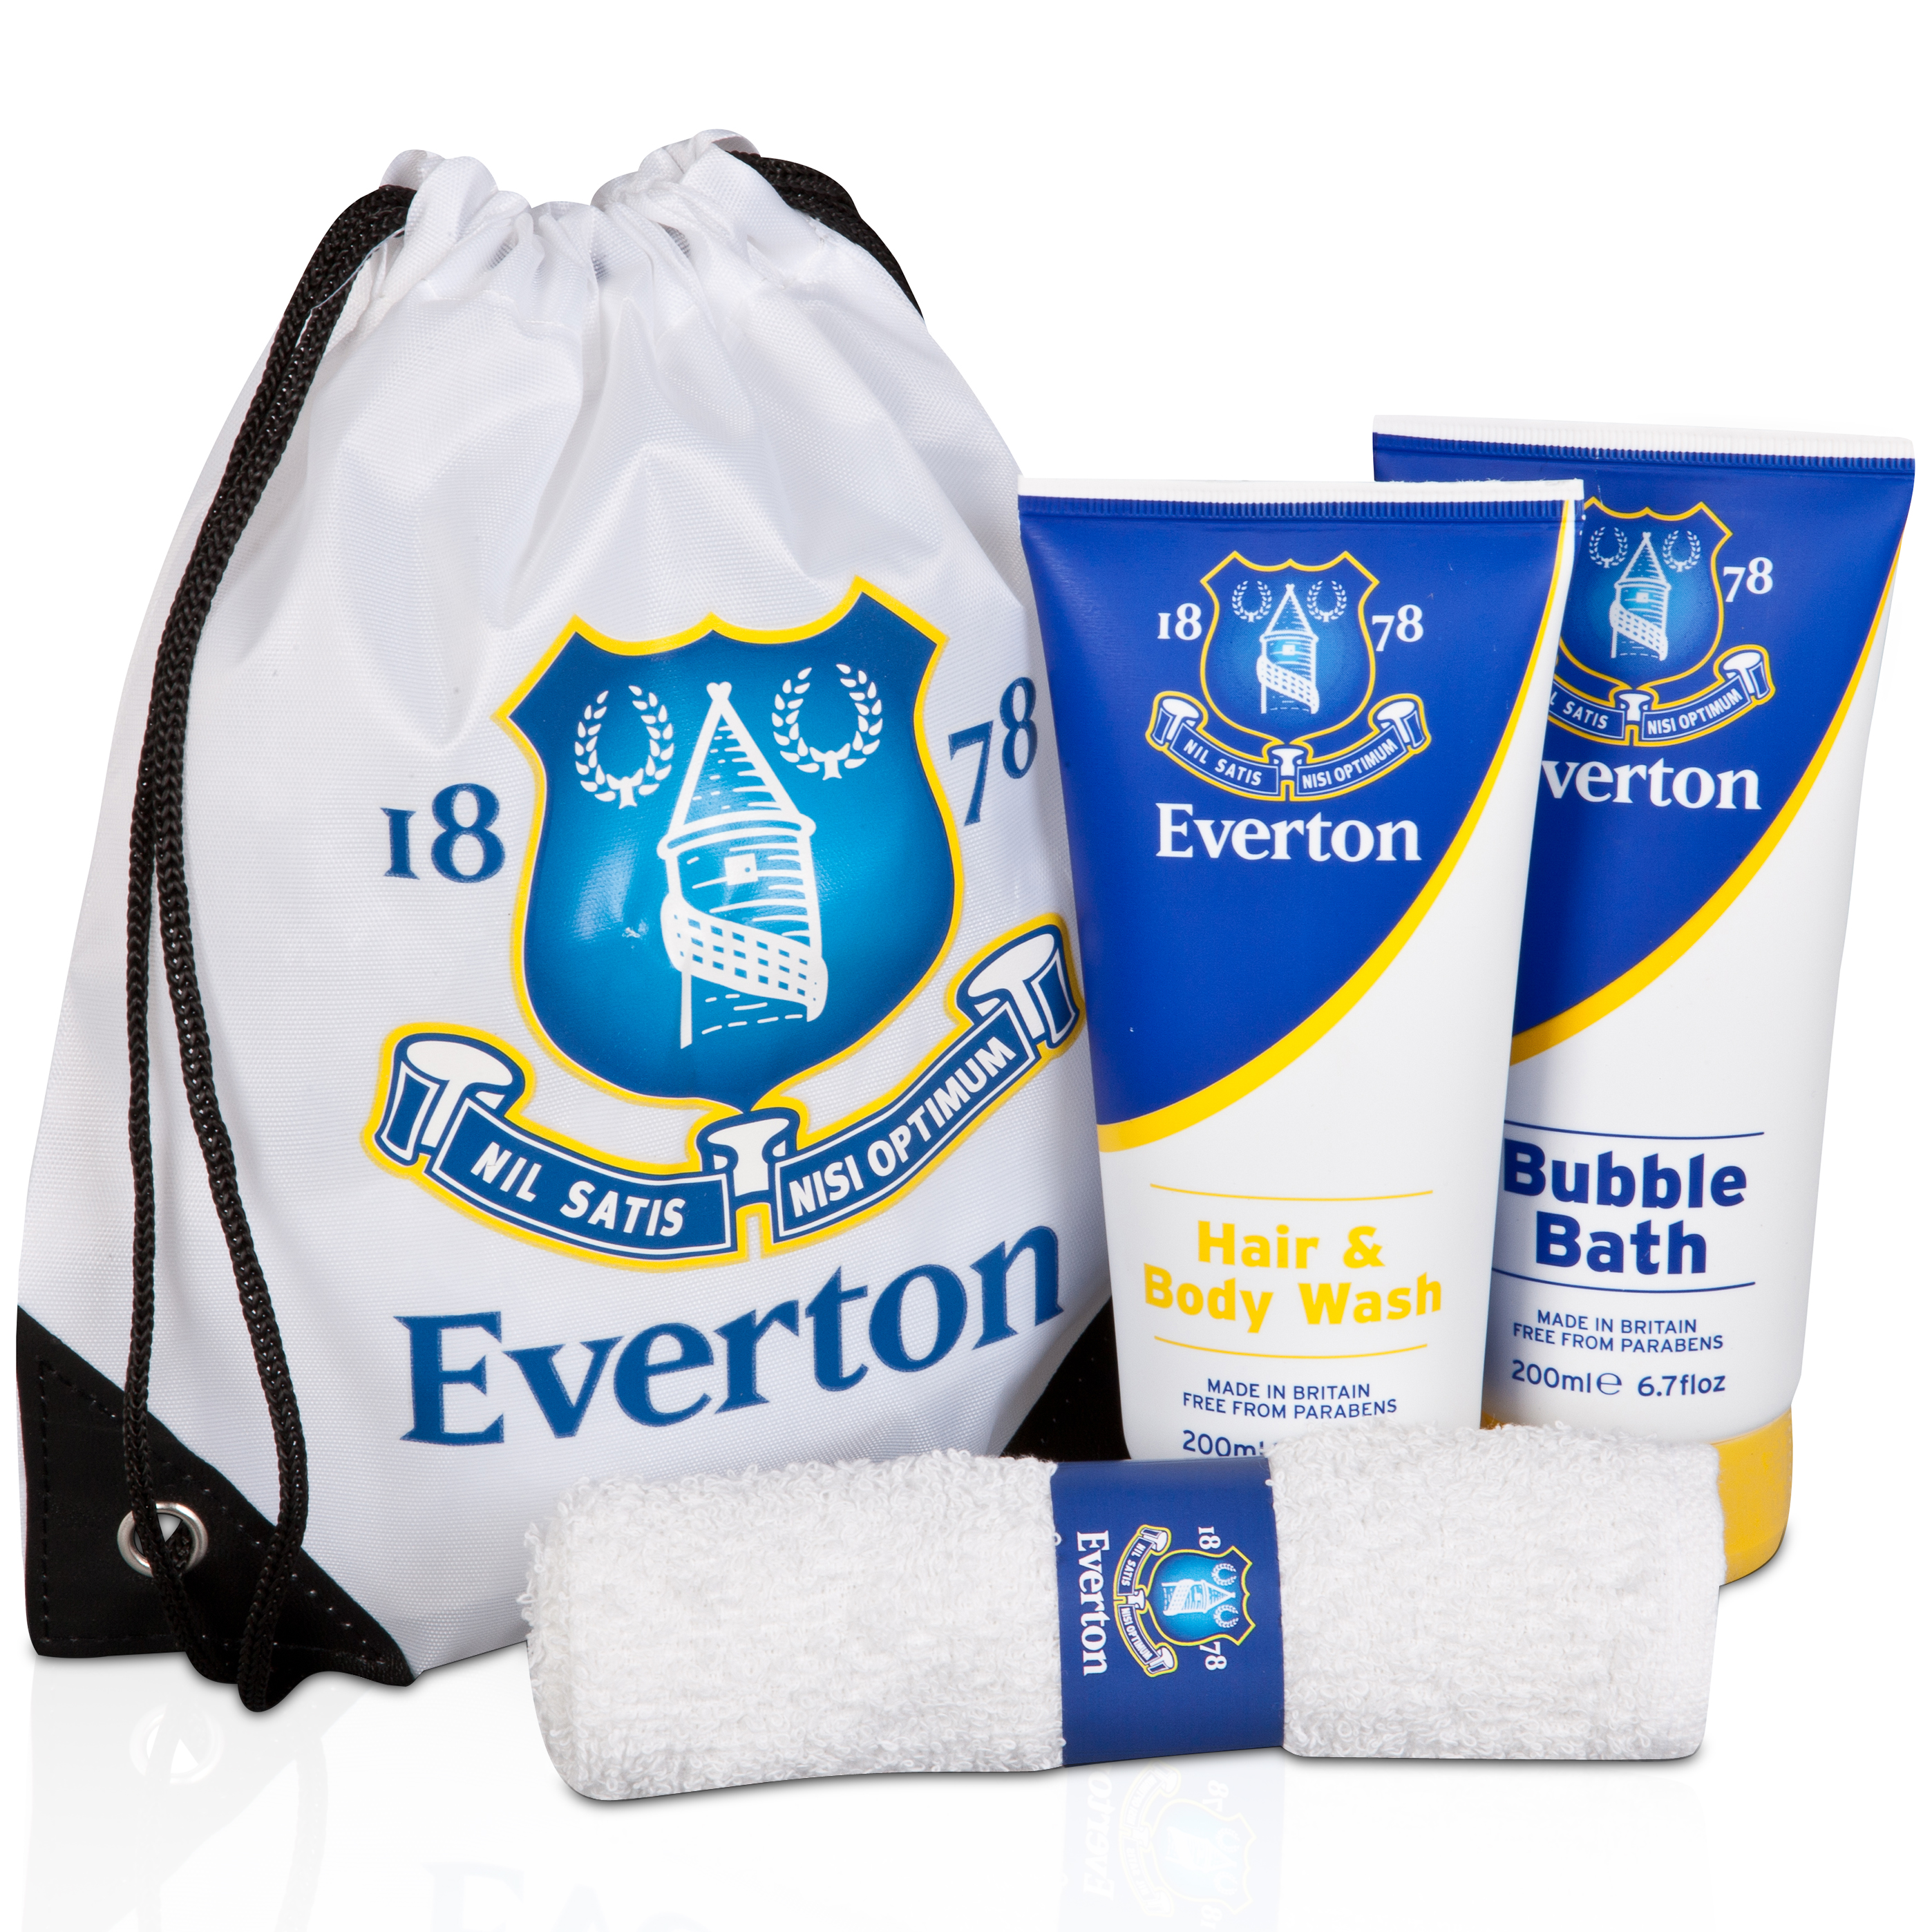 Everton Large Kit Bathroom Gift Set in a Wash Bag